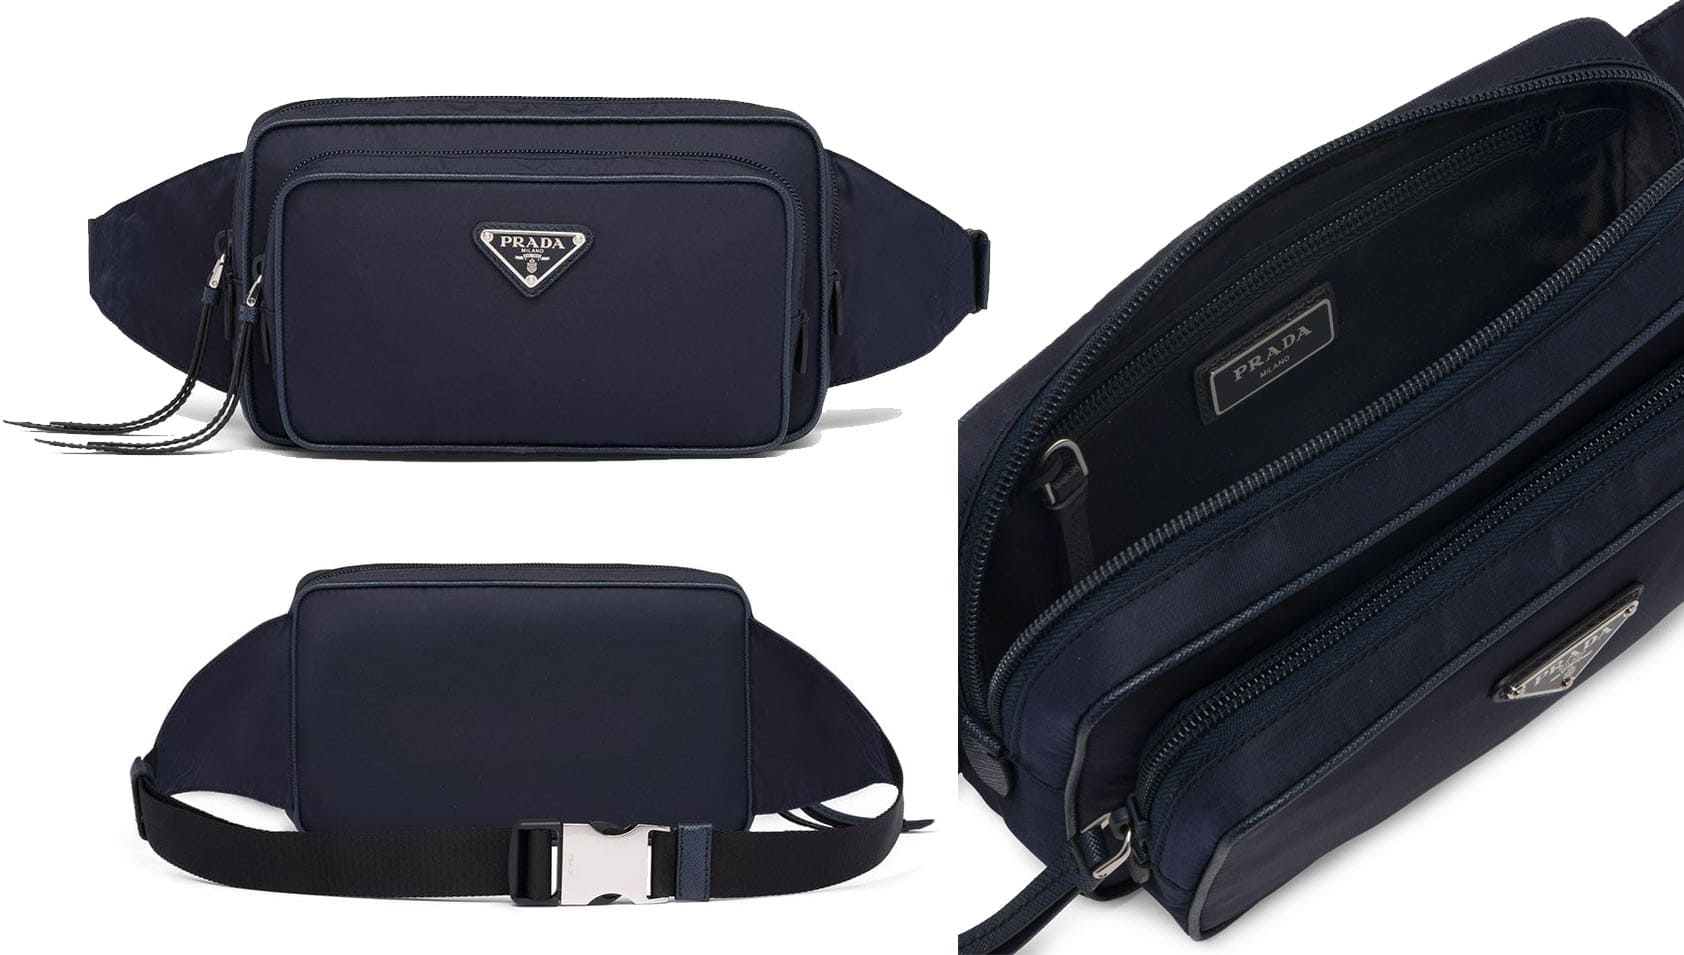 Belt bags is used to carry daily essentials and are usually worn around the waist using a belt-like strap with a triple-glide slide